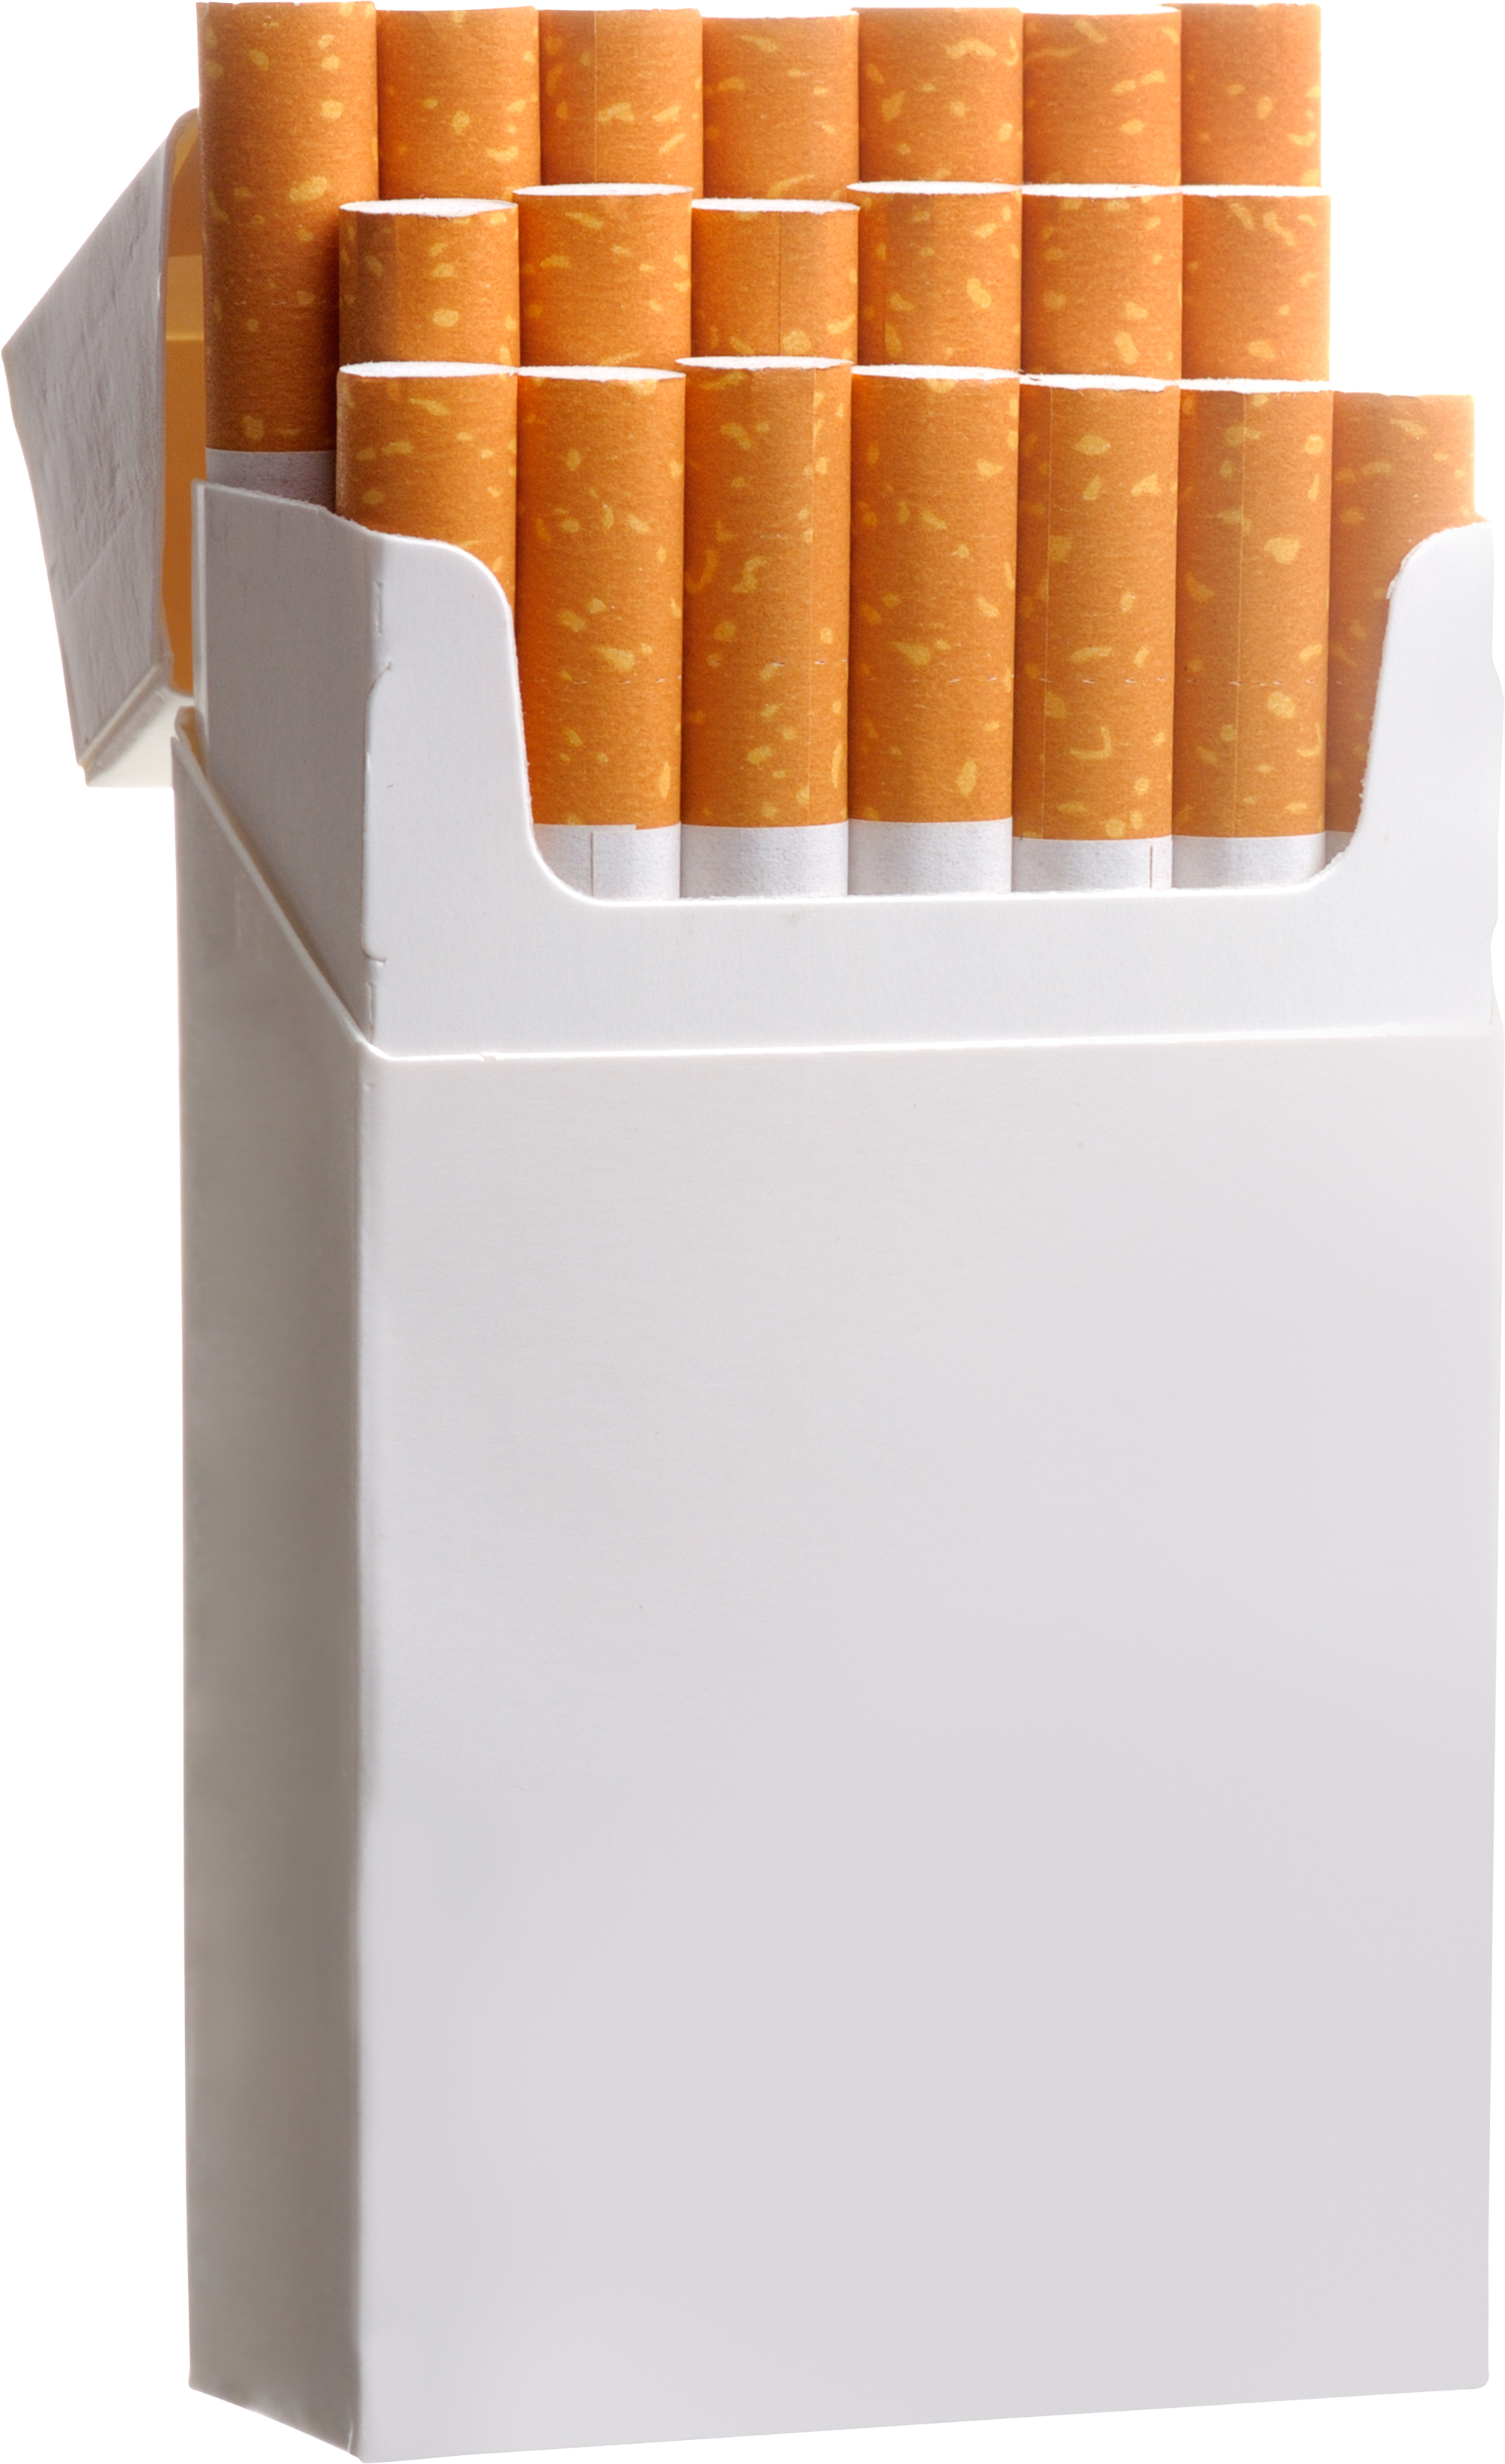 cigarette pack png